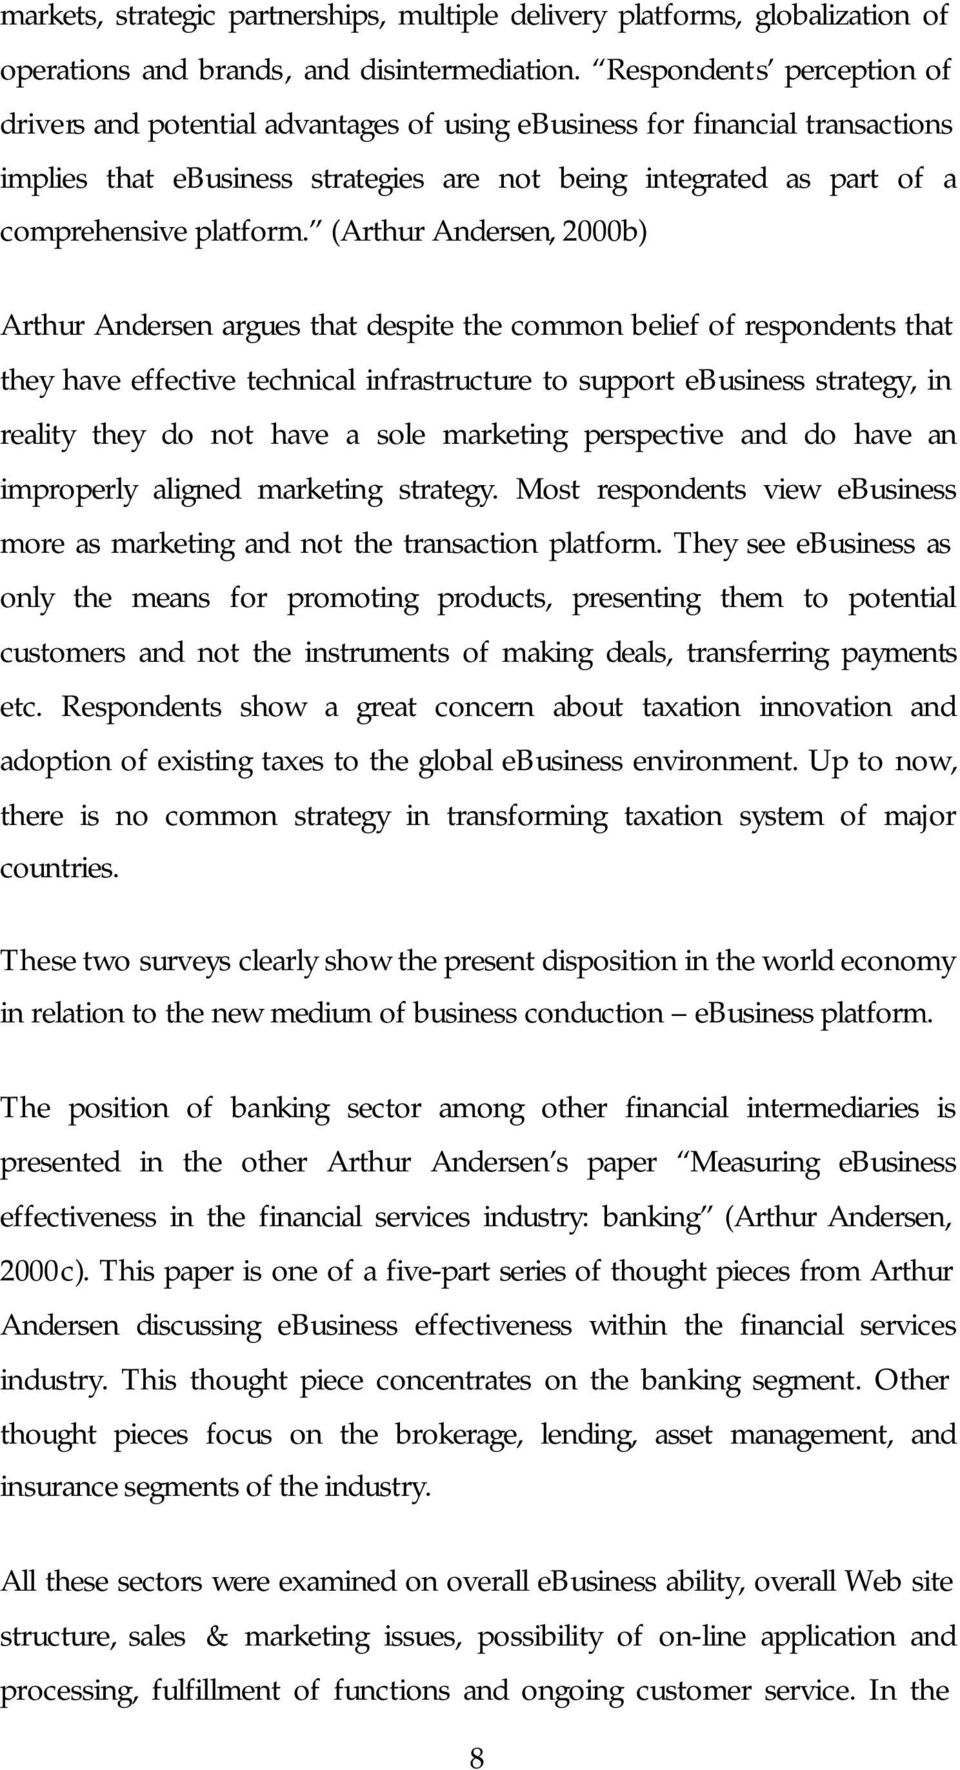 (Arthur Andersen, 2000b) Arthur Andersen argues that despite the common belief of respondents that they have effective technical infrastructure to support ebusiness strategy, in reality they do not